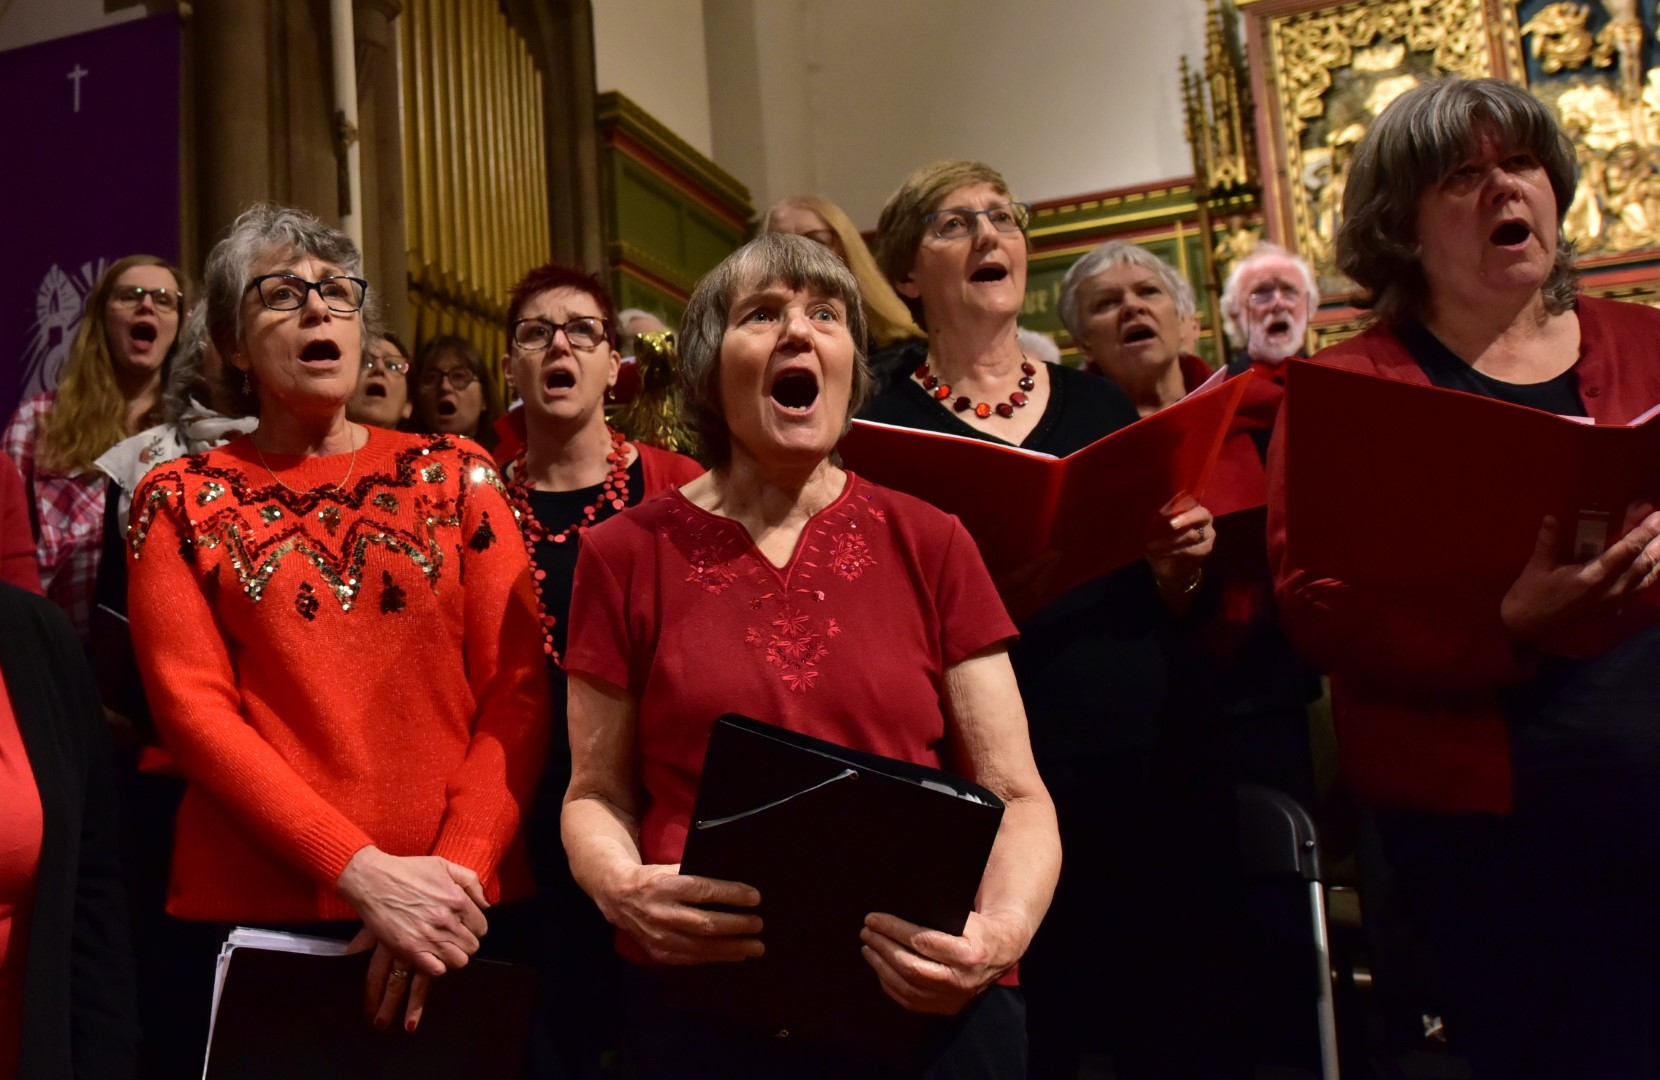 Members of Viva! sing at the Combined Choirs Christmas Concert